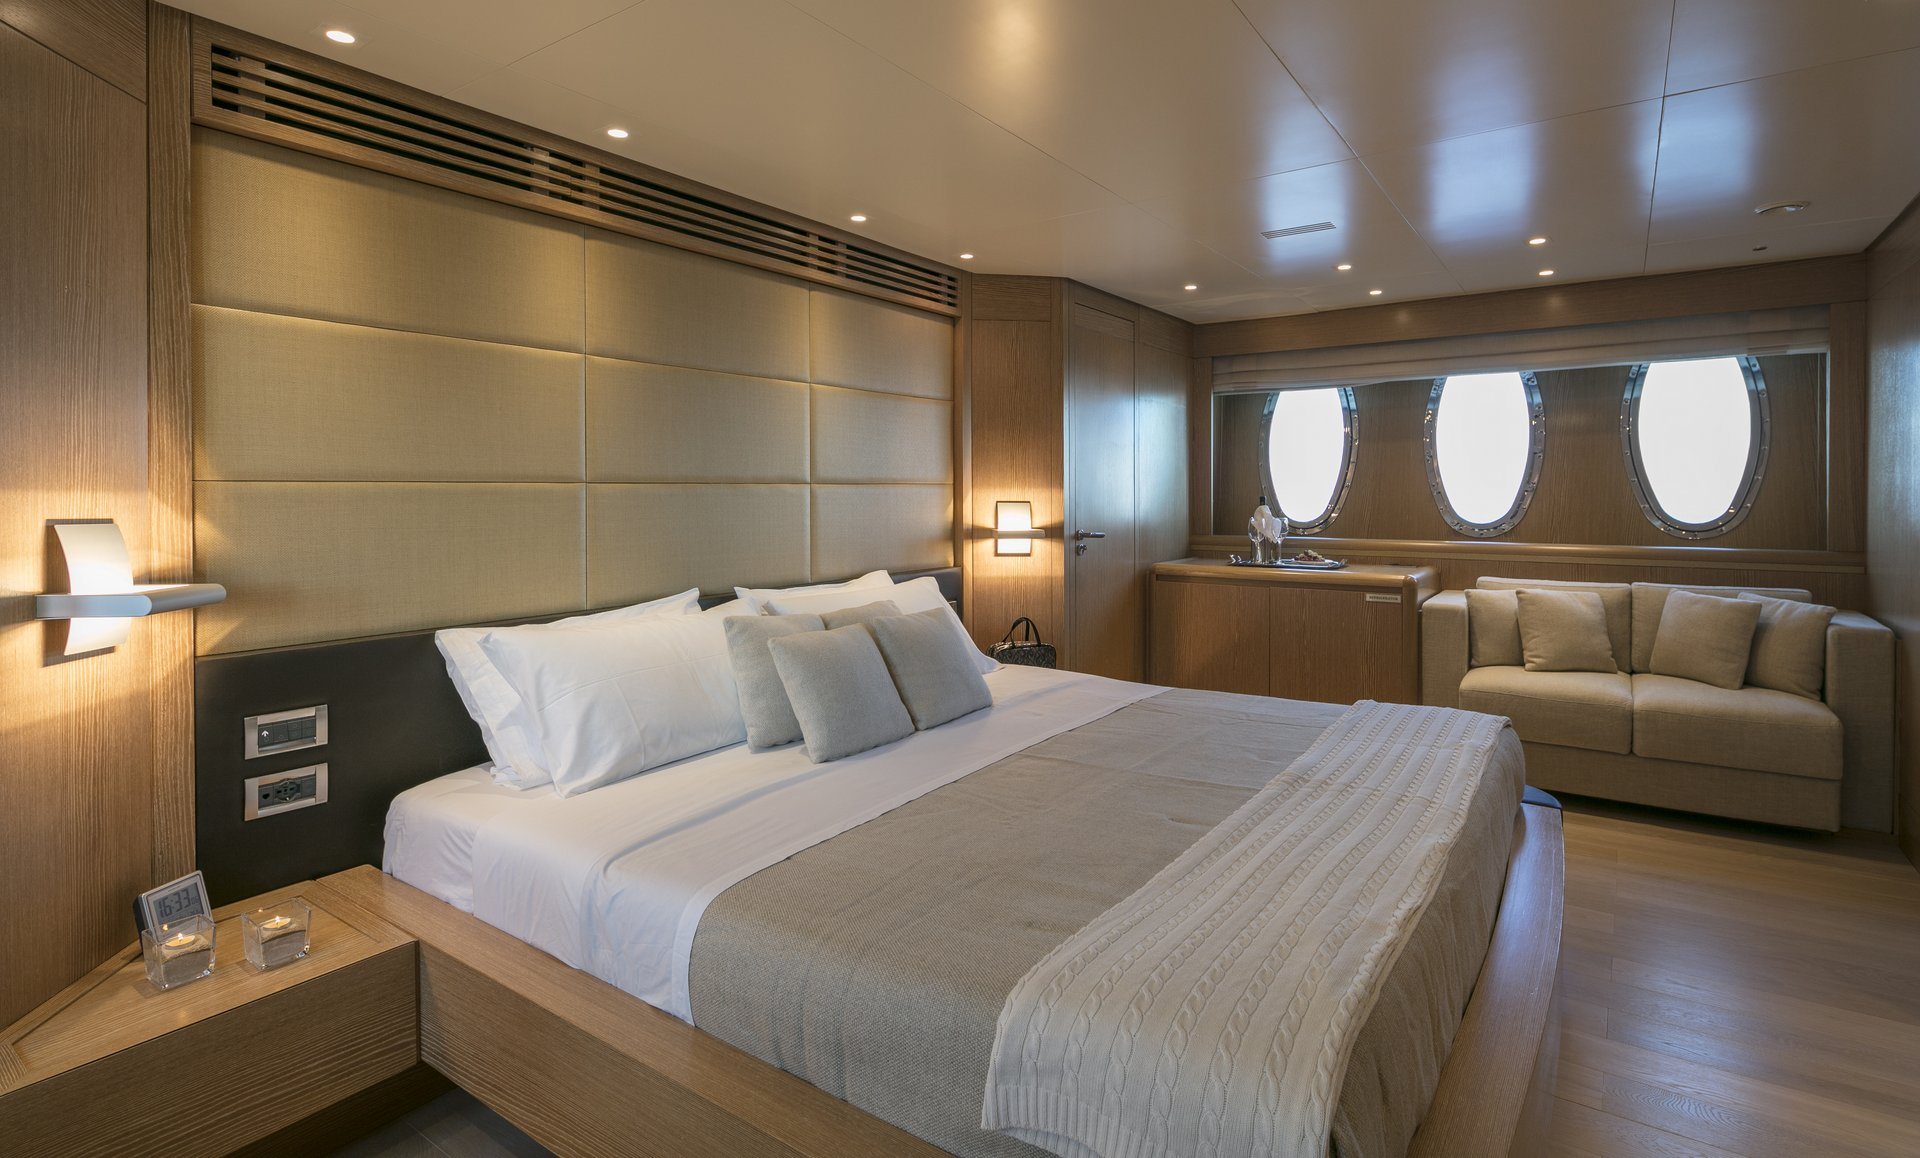 M/Y RINI V yacht for charter master suite bed